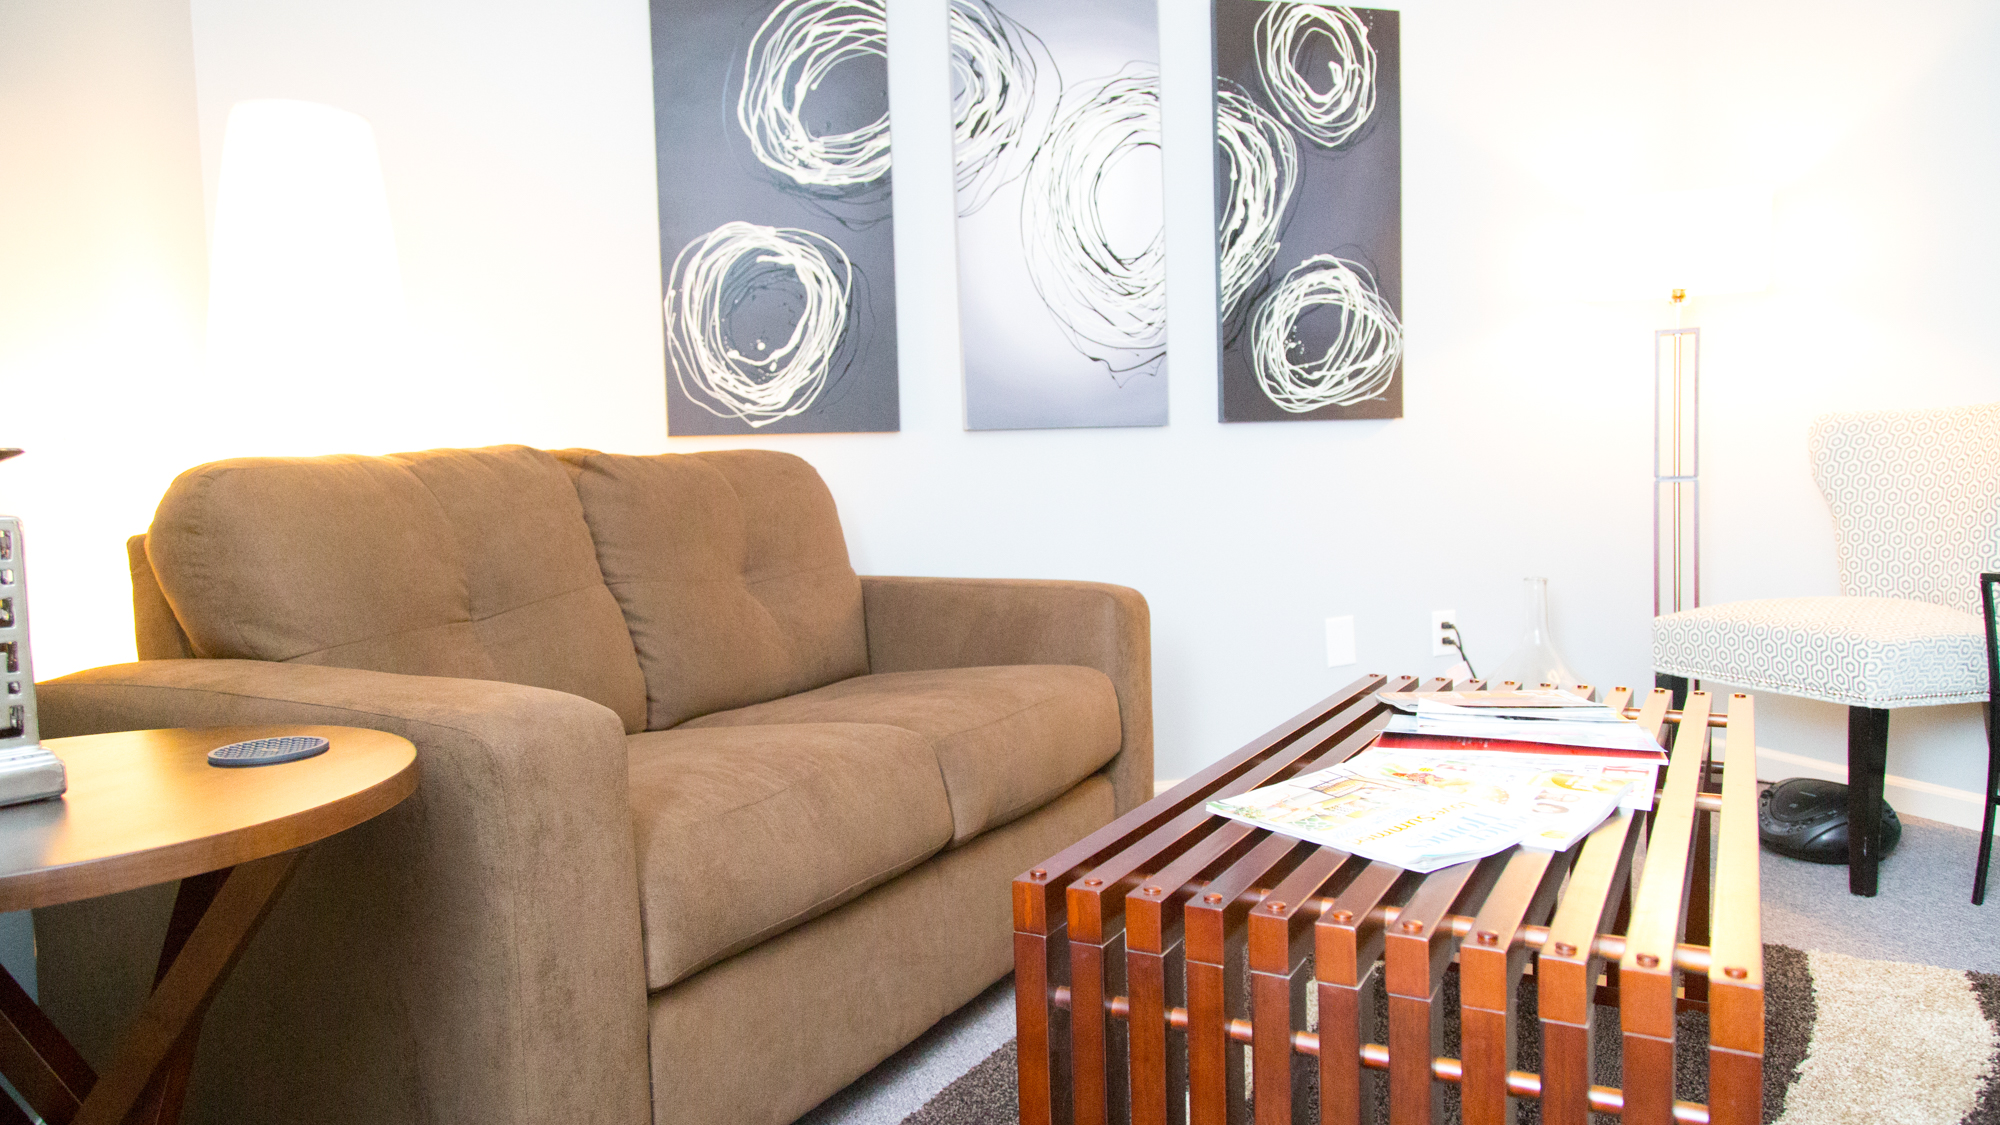 Thriveworks Bristol Counseling Office